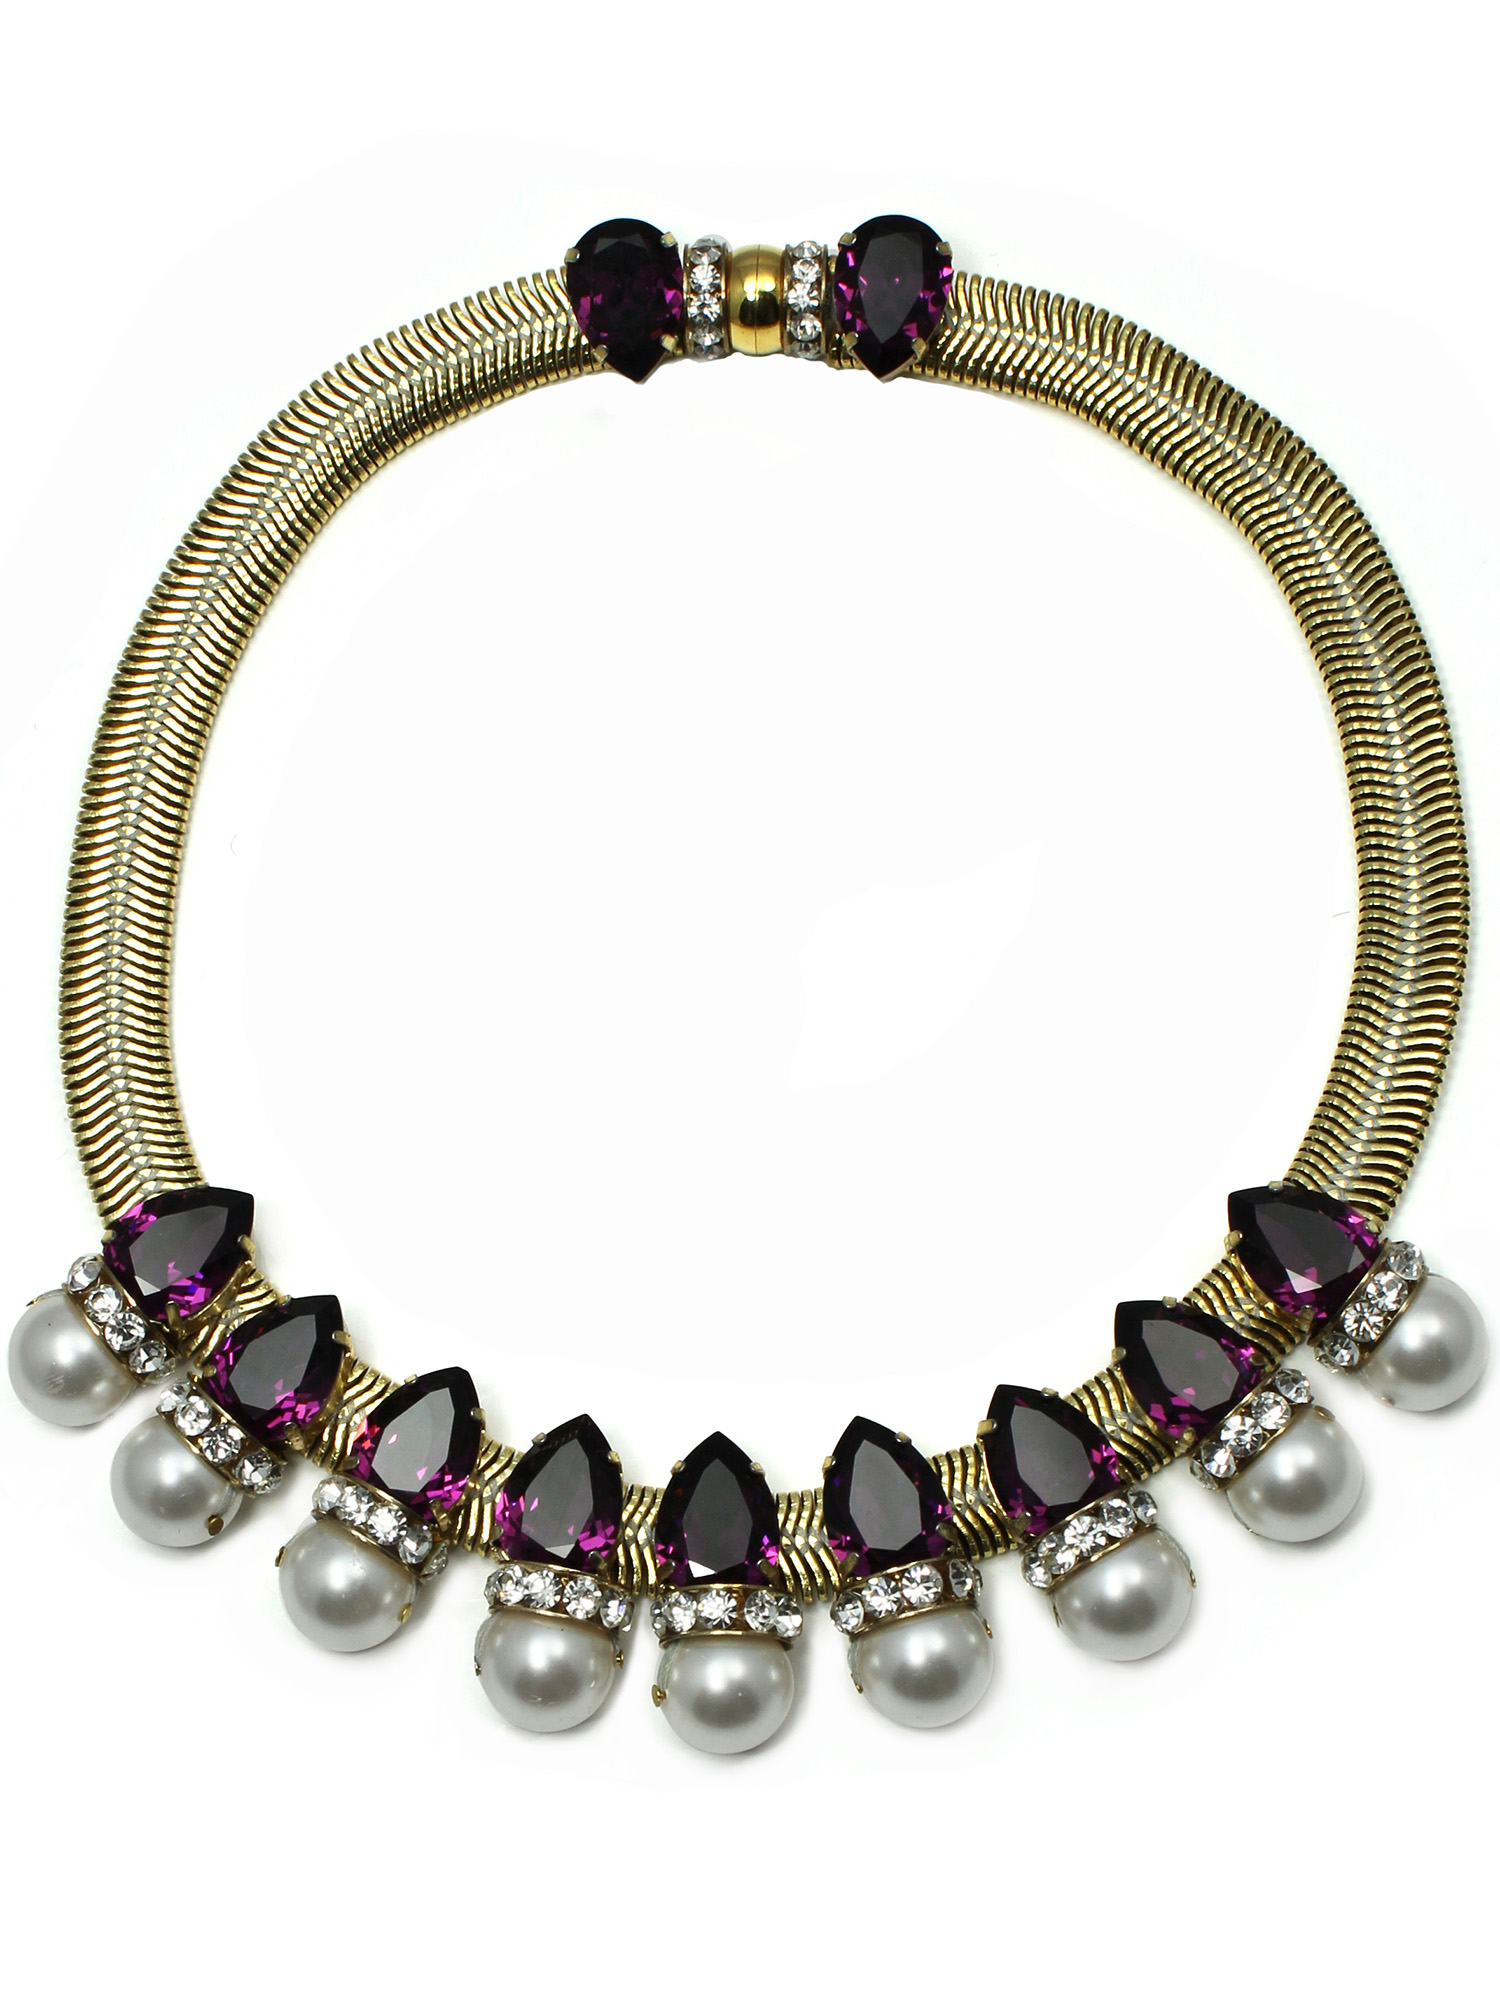 171N-PW Aragon Necklace - Purple_White.jpg